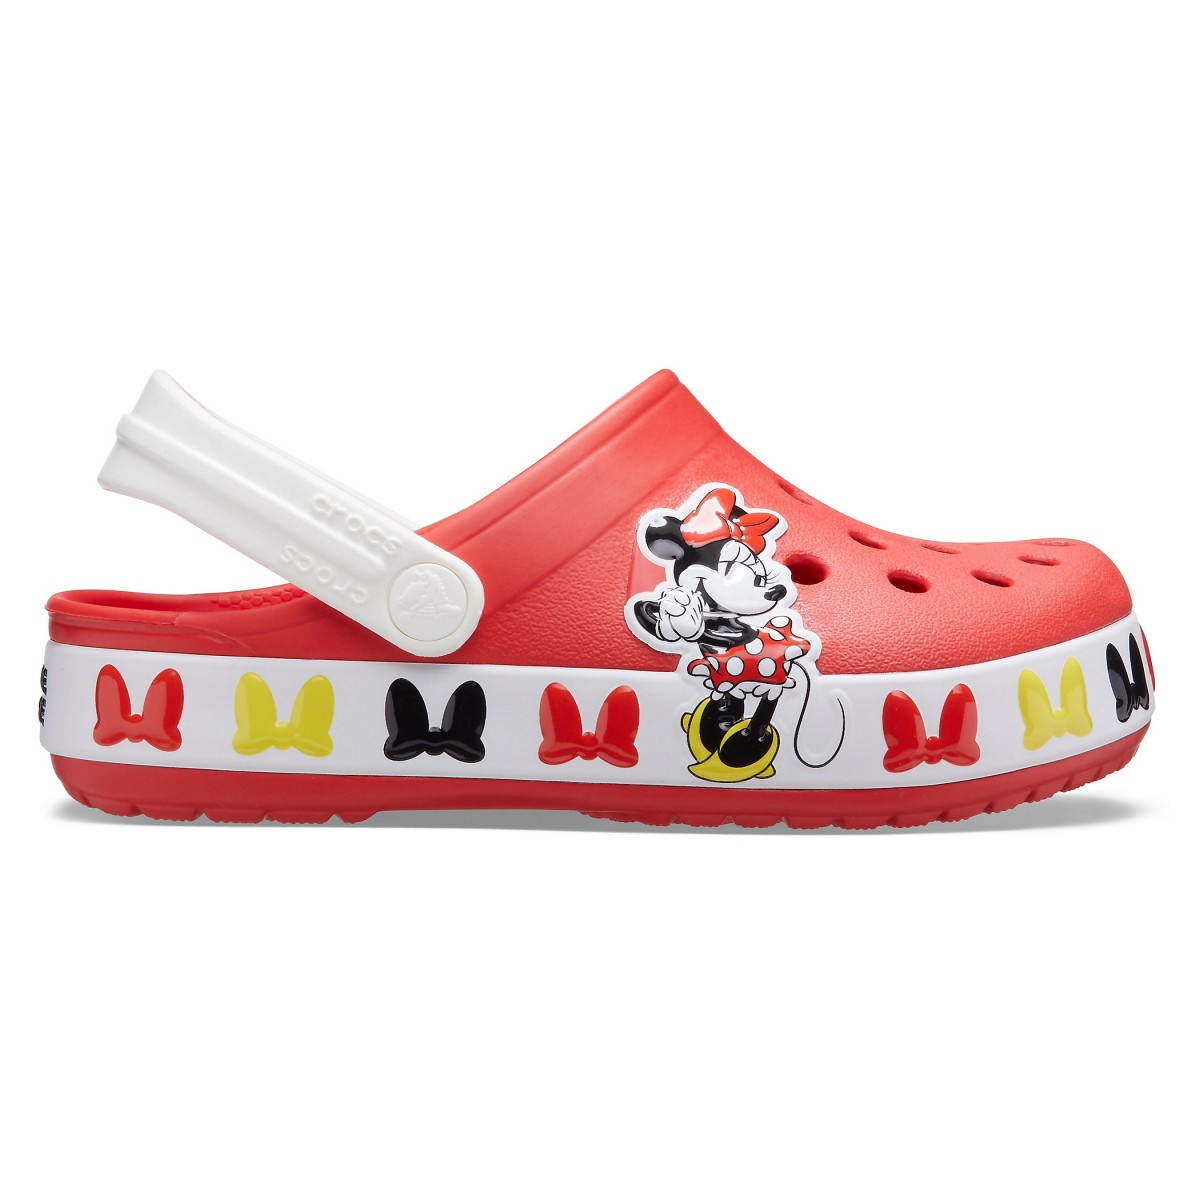 Saboți Fete de casă Crocs Crocs Fun Lab Disney Minnie Mouse Band Clog Roșii -1